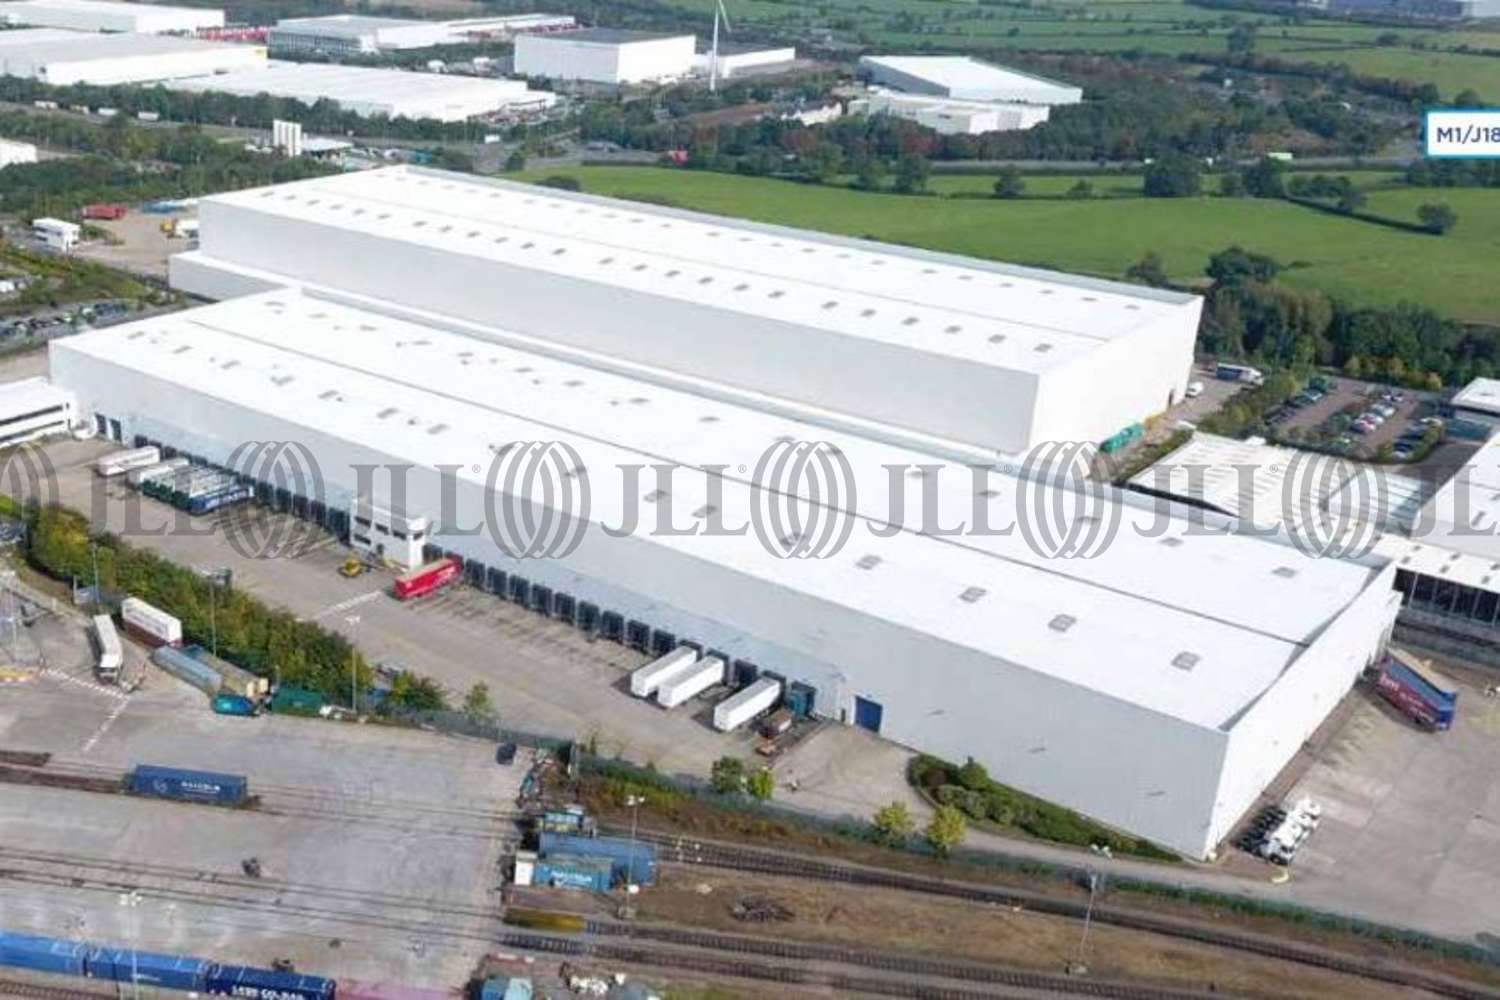 Industrial Daventry, NN6 7FT - DC240 Prologis RFI DIRFT - 2